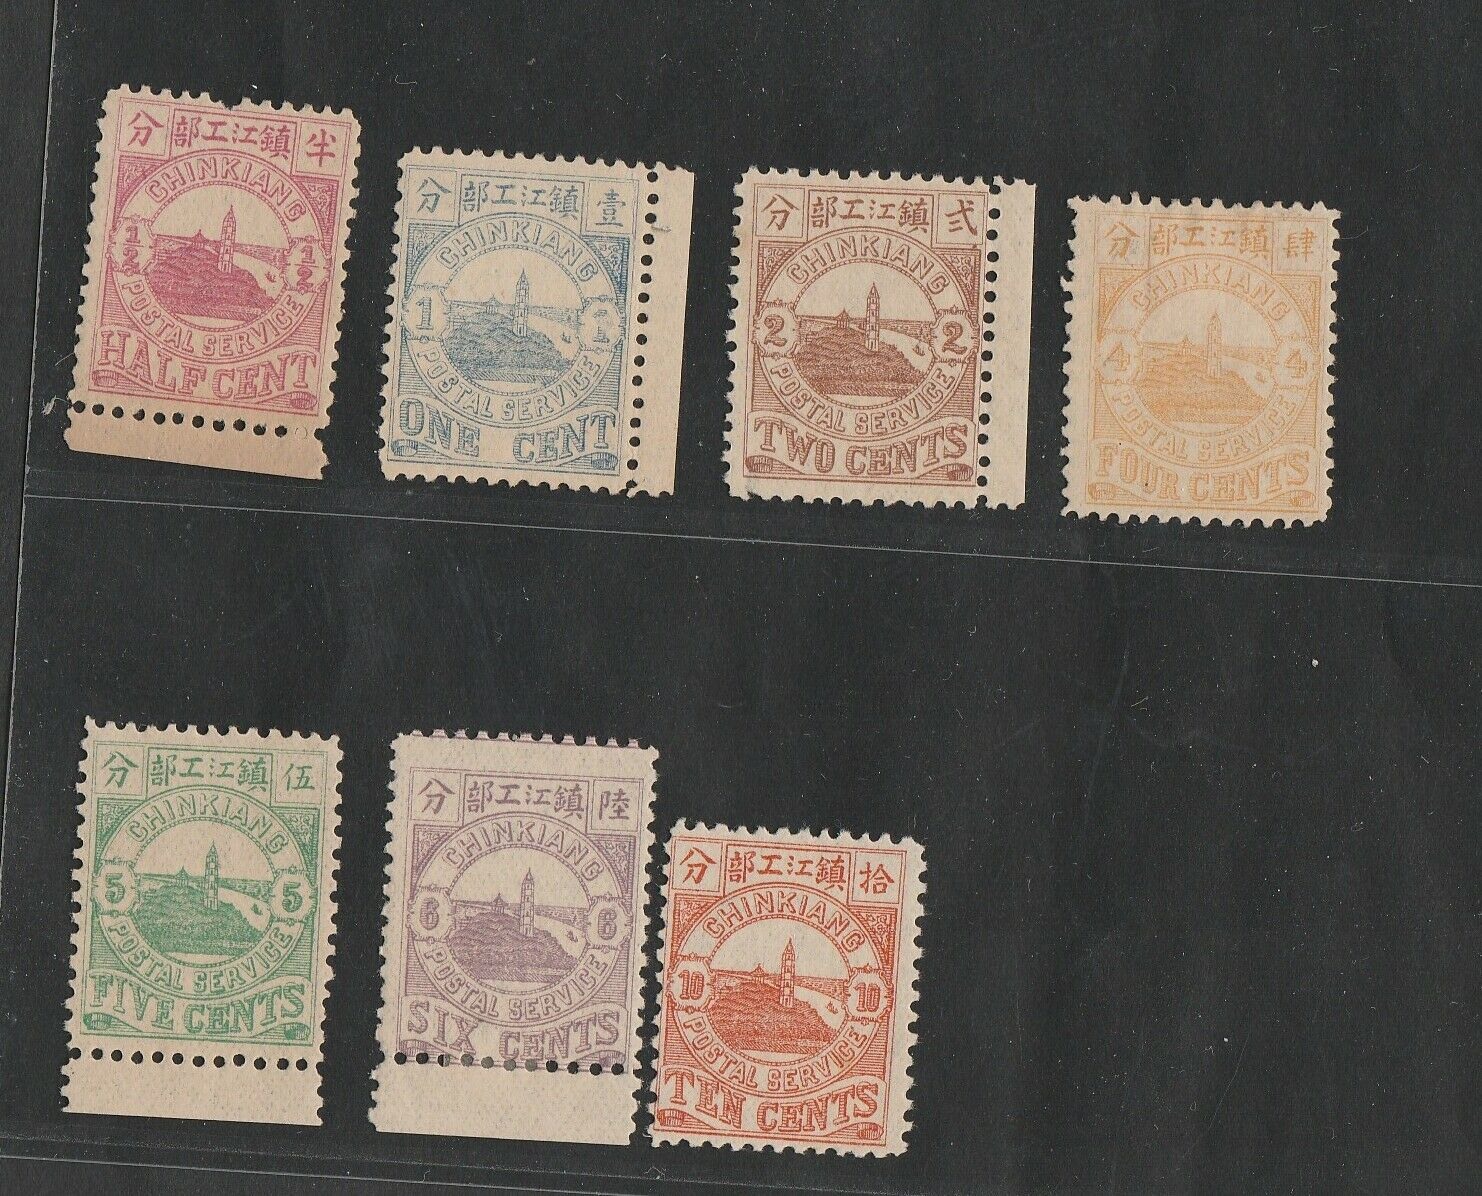 1894 ChinKiang Local Post,  1st issue complete set of 7, .  Chan LCH1 - 7 (1)